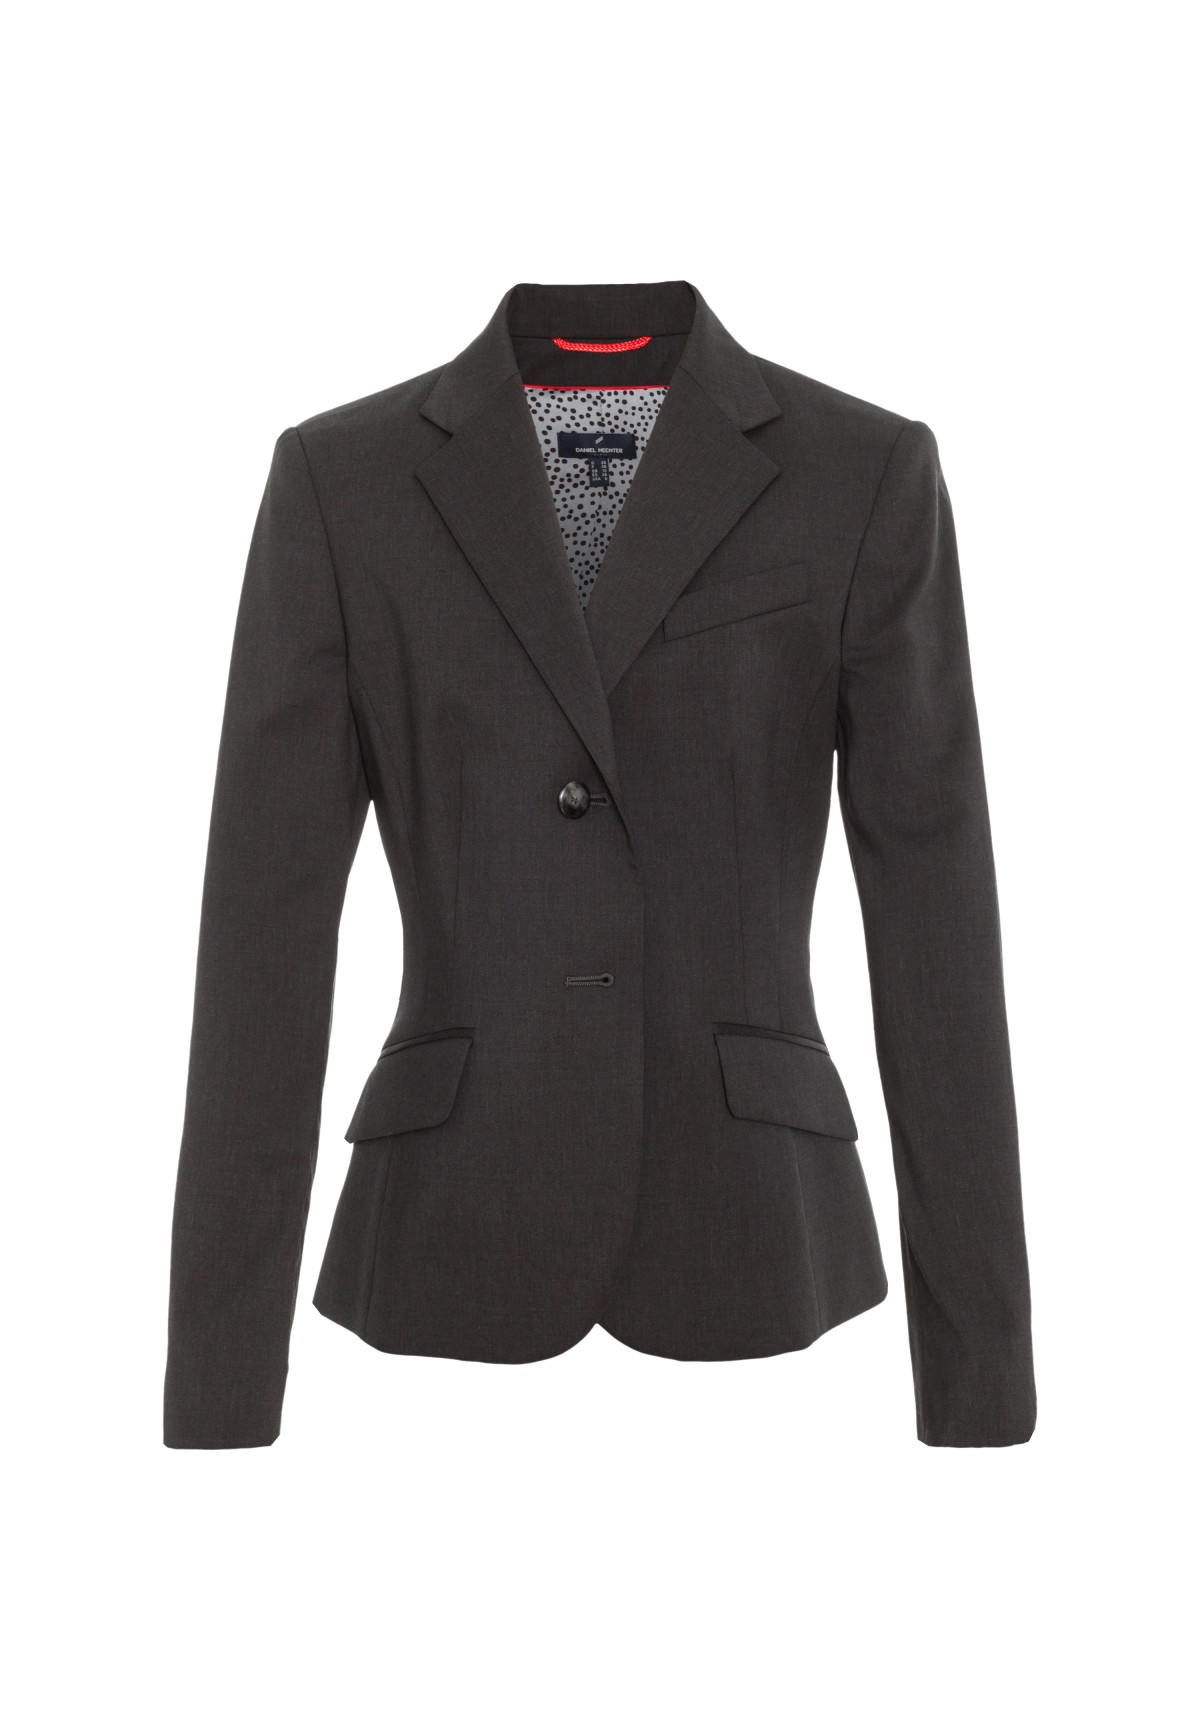 Eleganter Schurwollblazer Careme / Eleganter Schurwollblazer Careme in Tiefschwarz